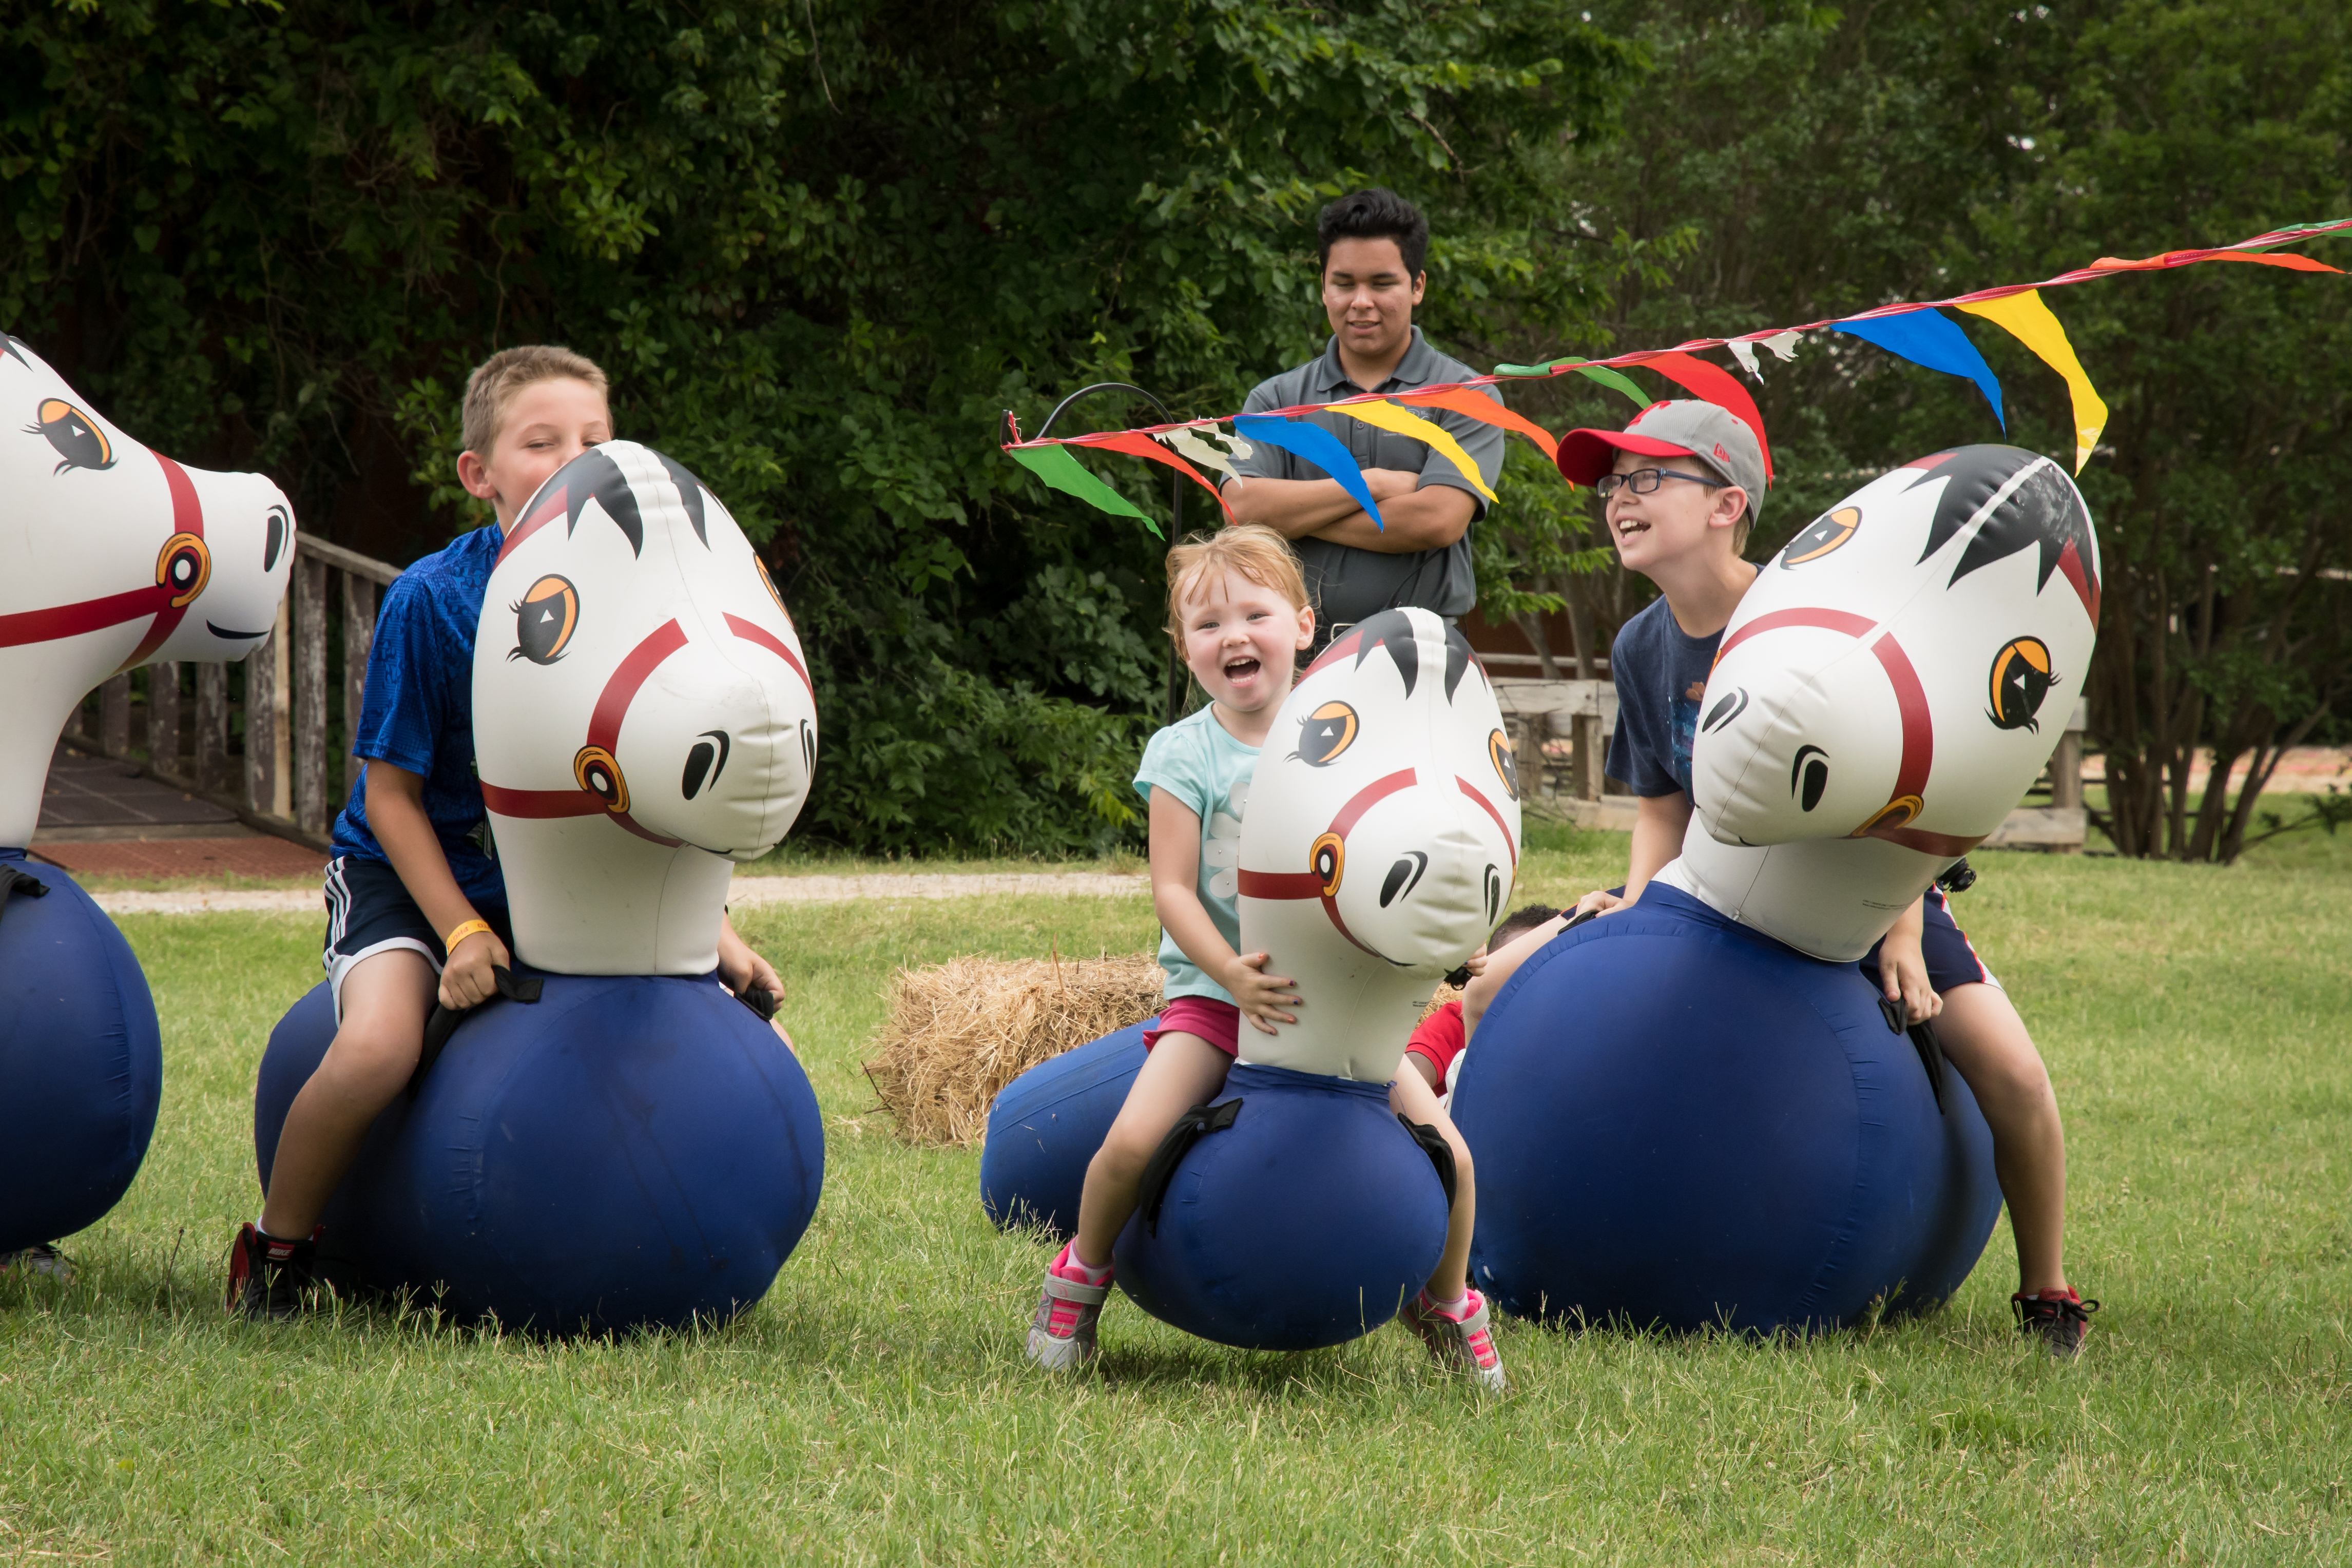 Inflatable Ponies  for Company Picnic at